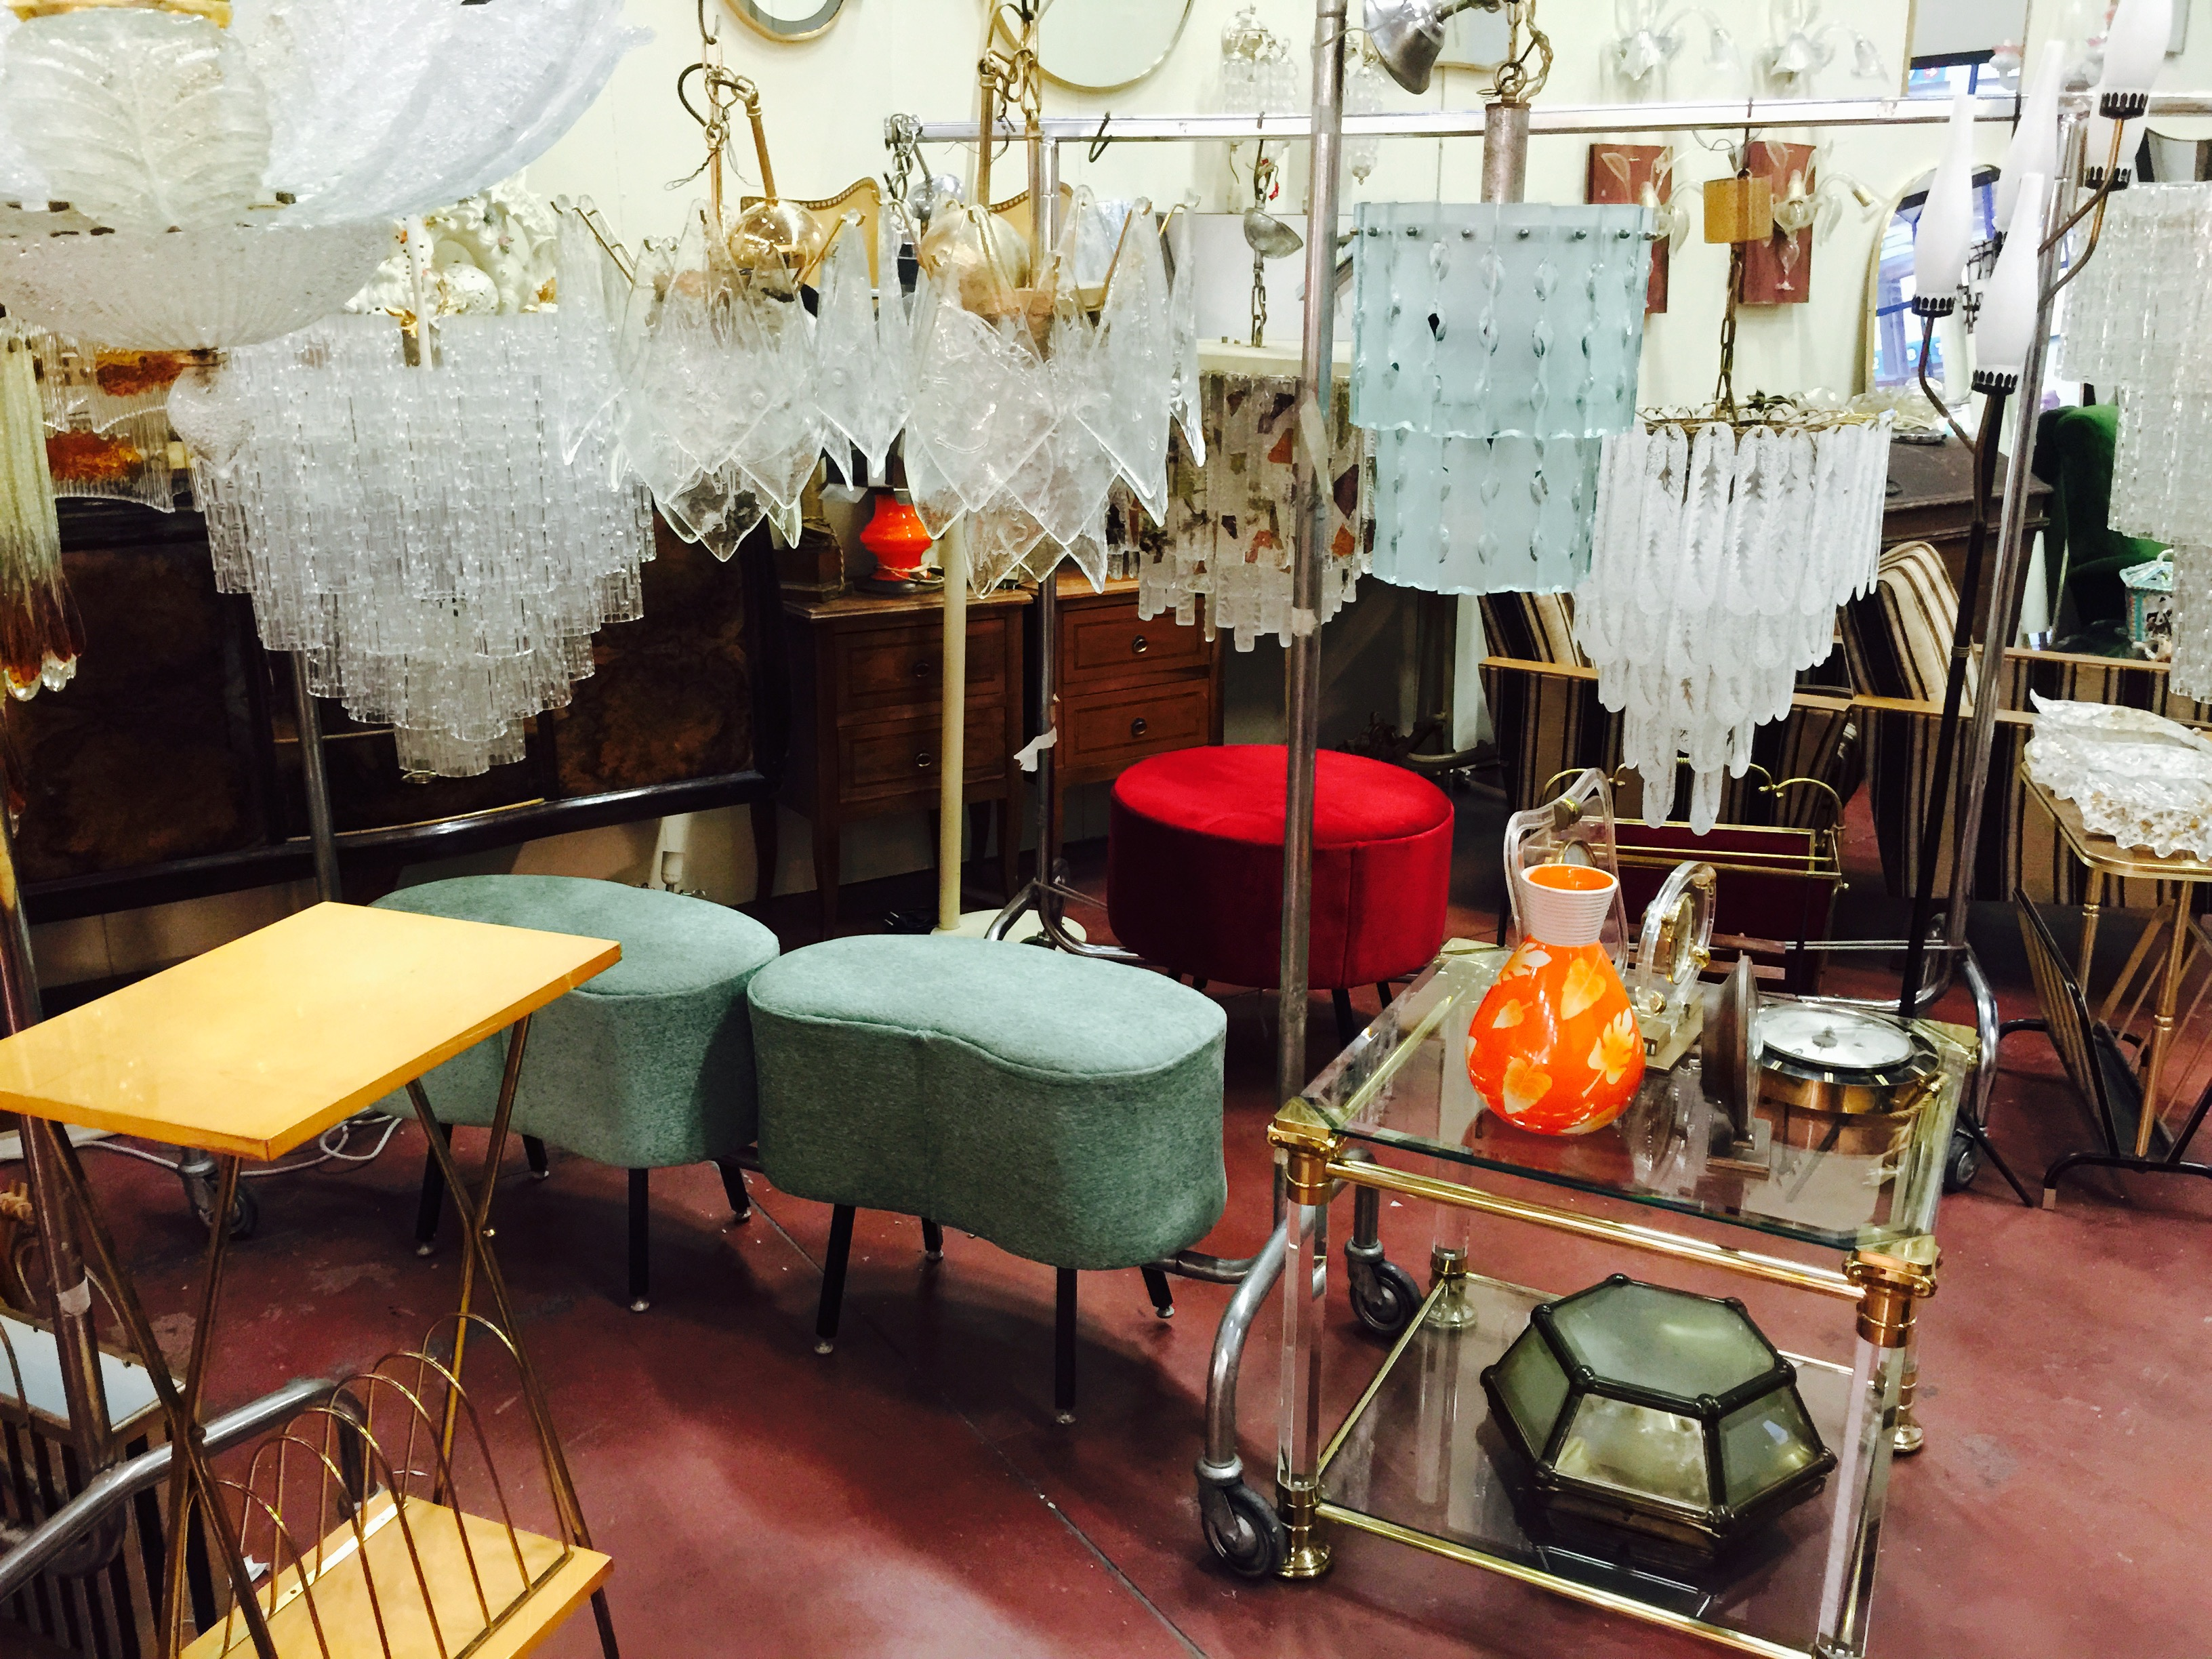 mid centruy modern and vintage finds in Italy with The Antiques Diva